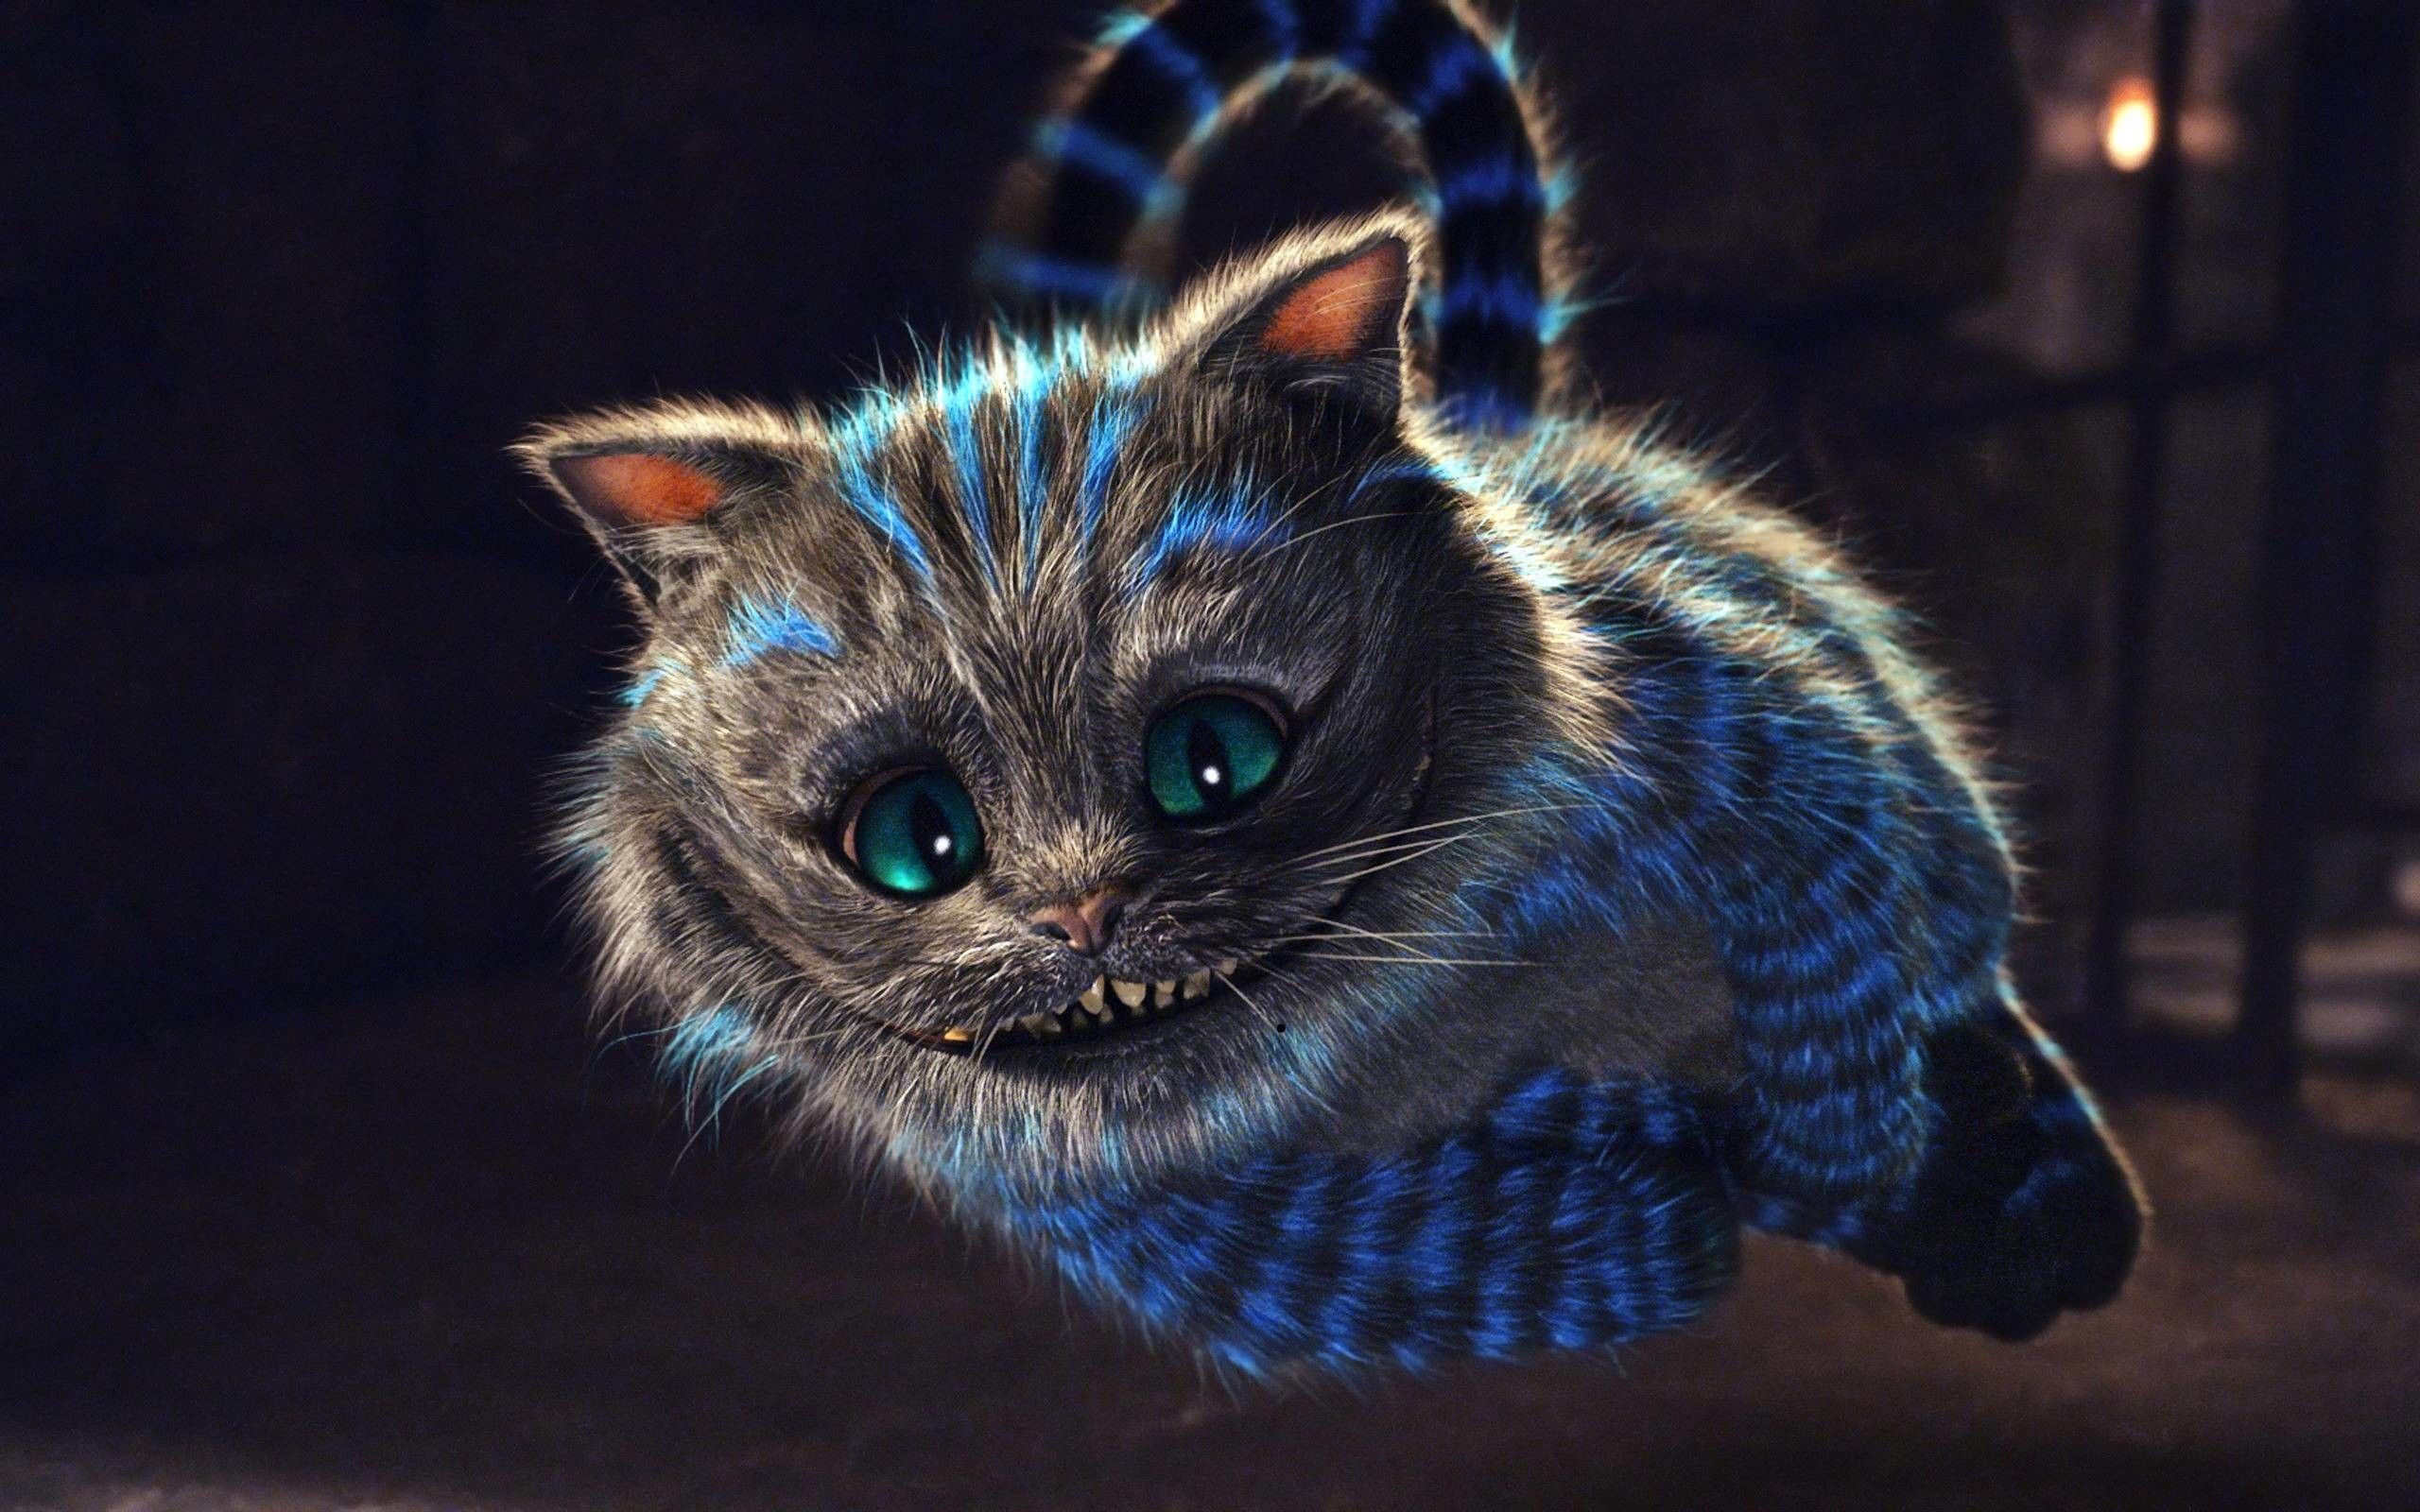 Funny Cartoon Cat Wallpaper For Android #5422 Wallpaper | High .